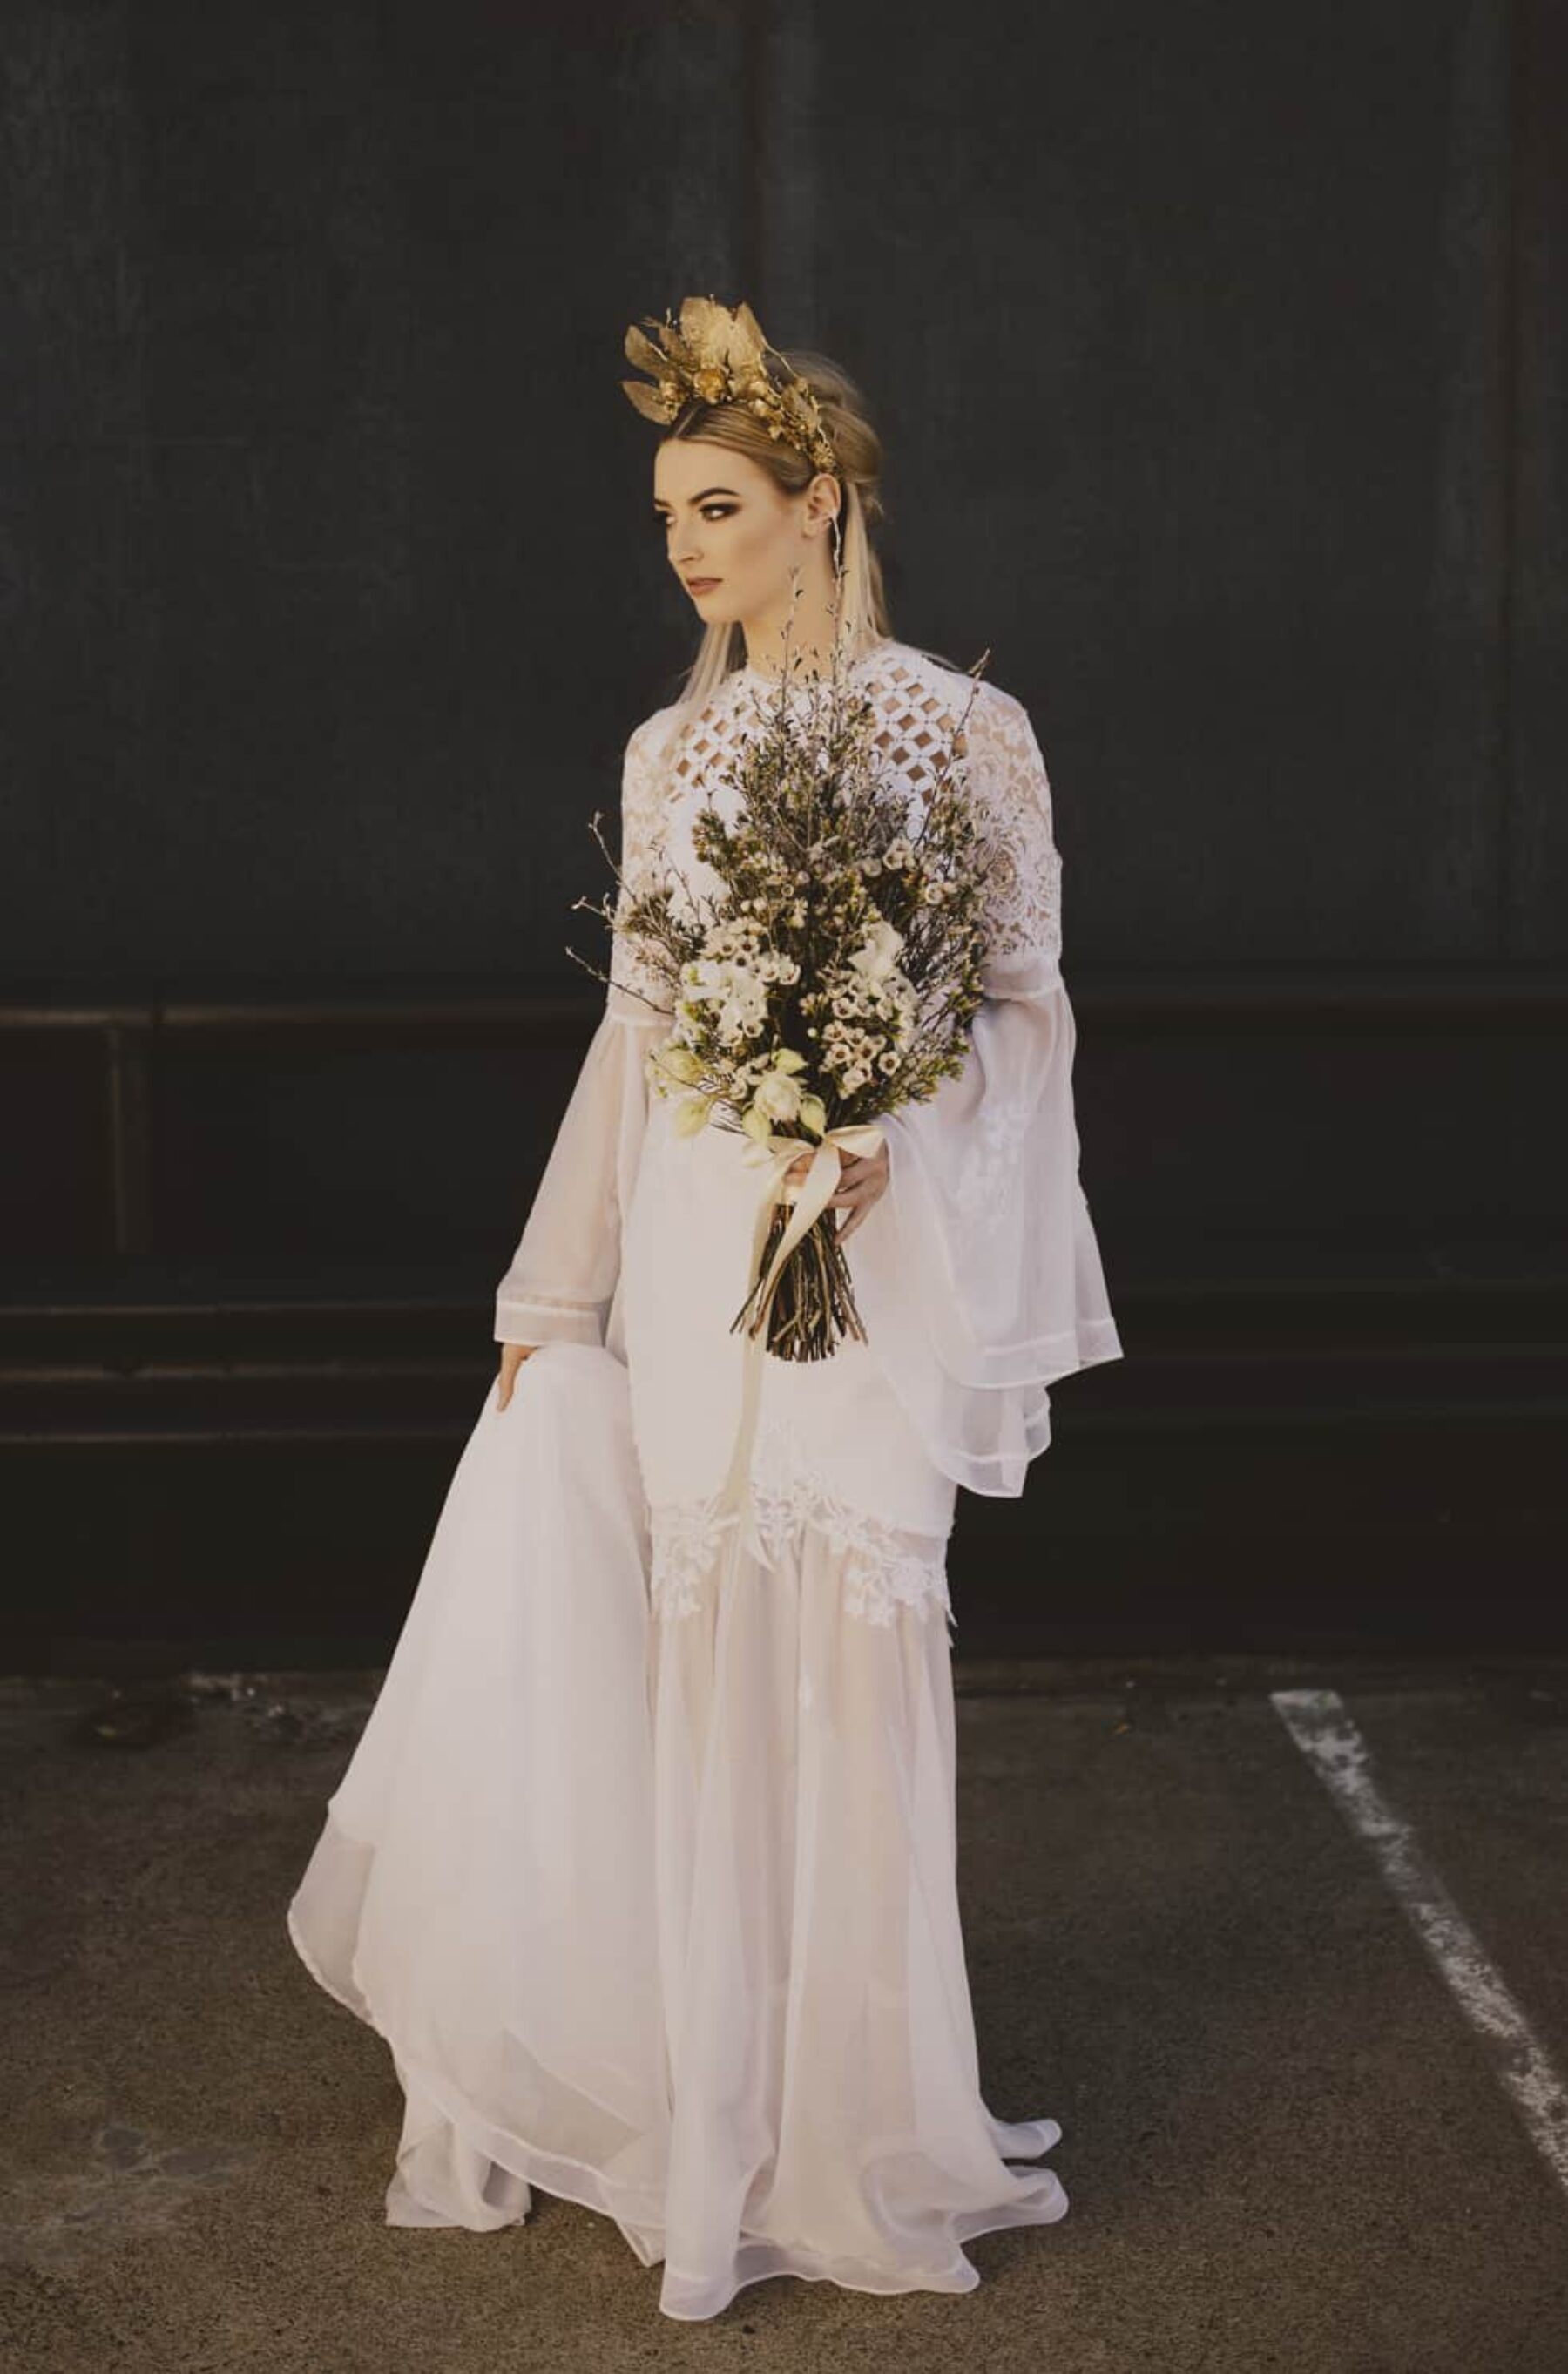 modern long sleeve lace wedding dress by Judy Copley Couture